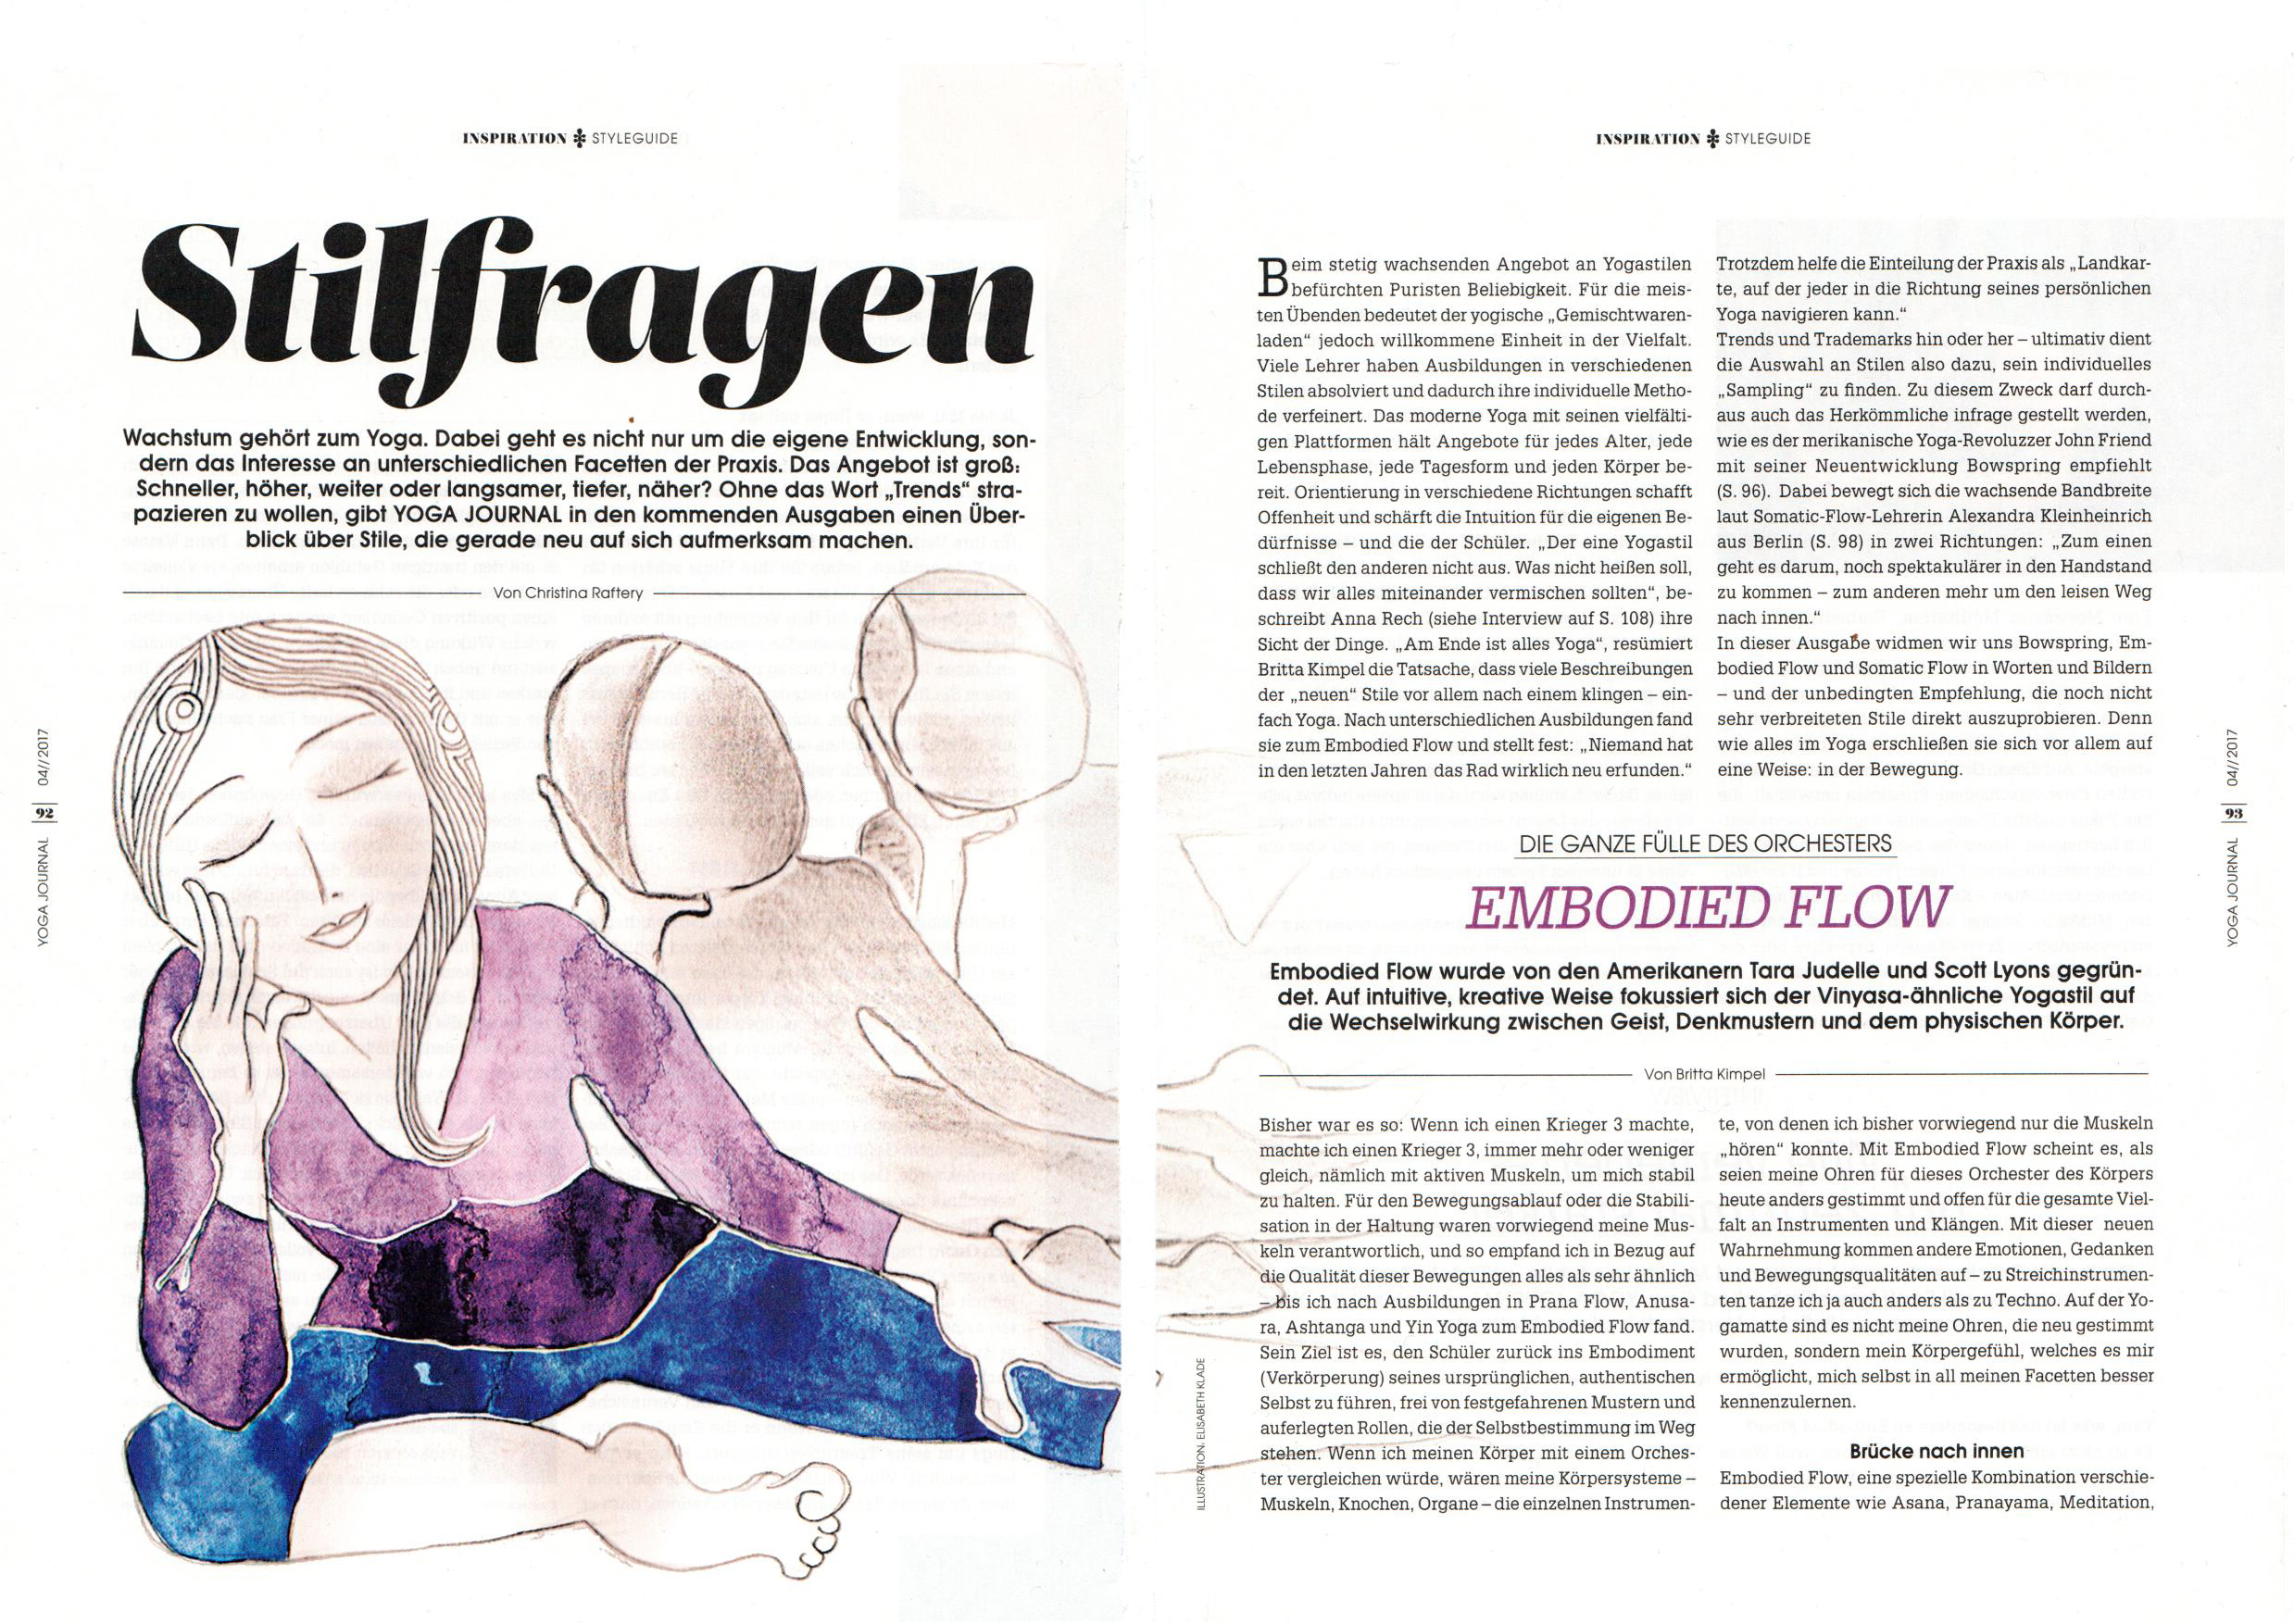 Embodied Flow Press Feature GERMAN YOGA JOURNAL 1.jpg